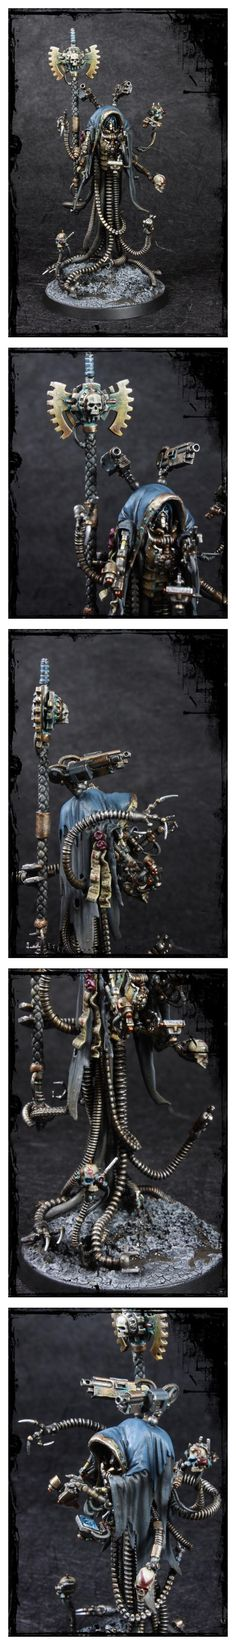 DakkaDakka - Wargaming and Warhammer 40k Forums, Articles and Gallery - Homepage | Now accepting servo-skull applications.